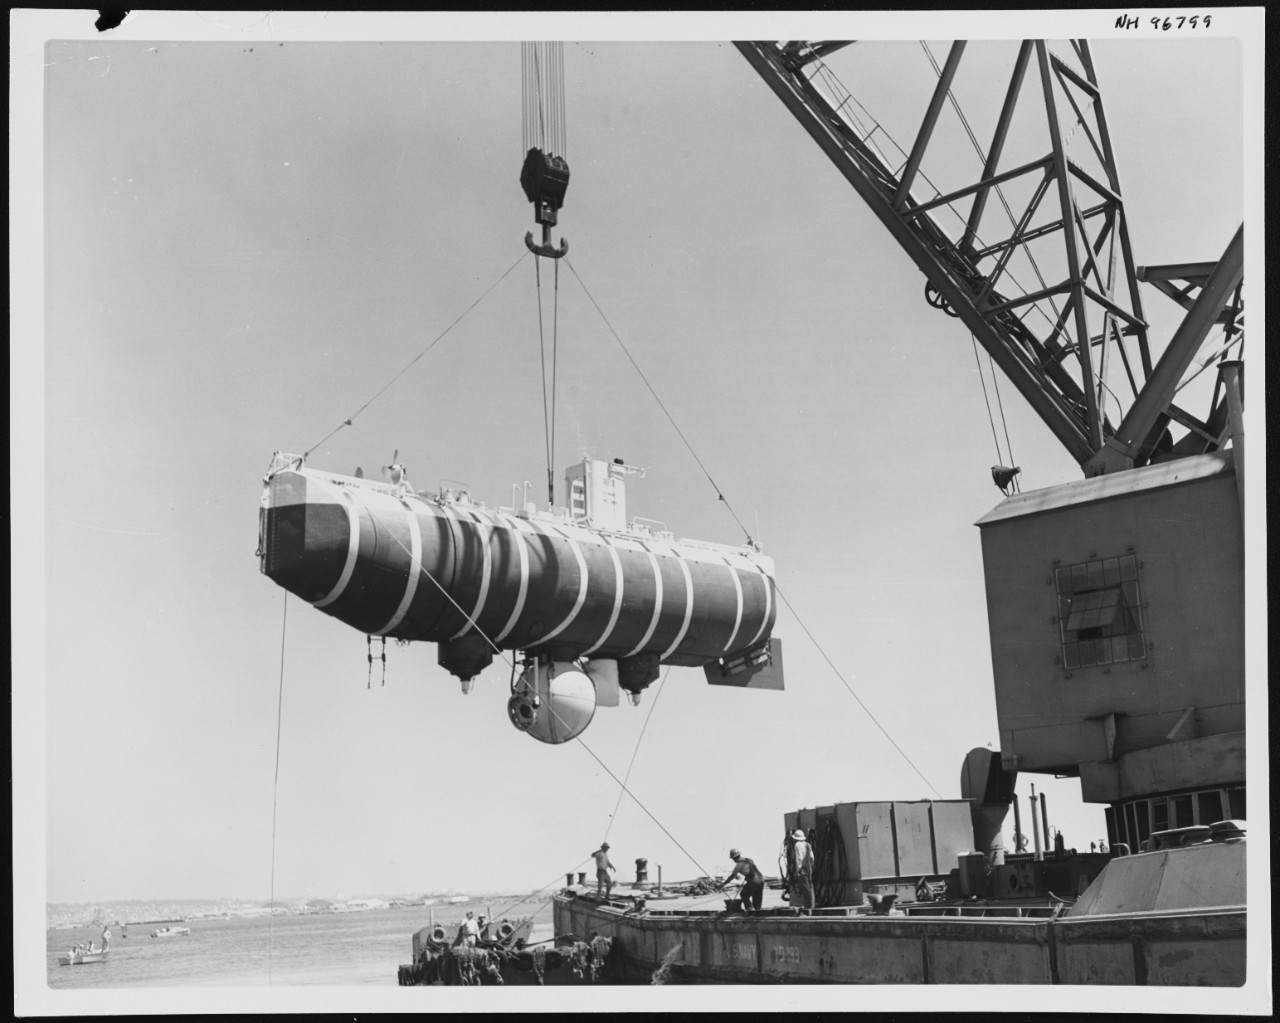 Photo #: NH 96799  U.S. Navy Bathyscaphe Trieste (1958-1963)